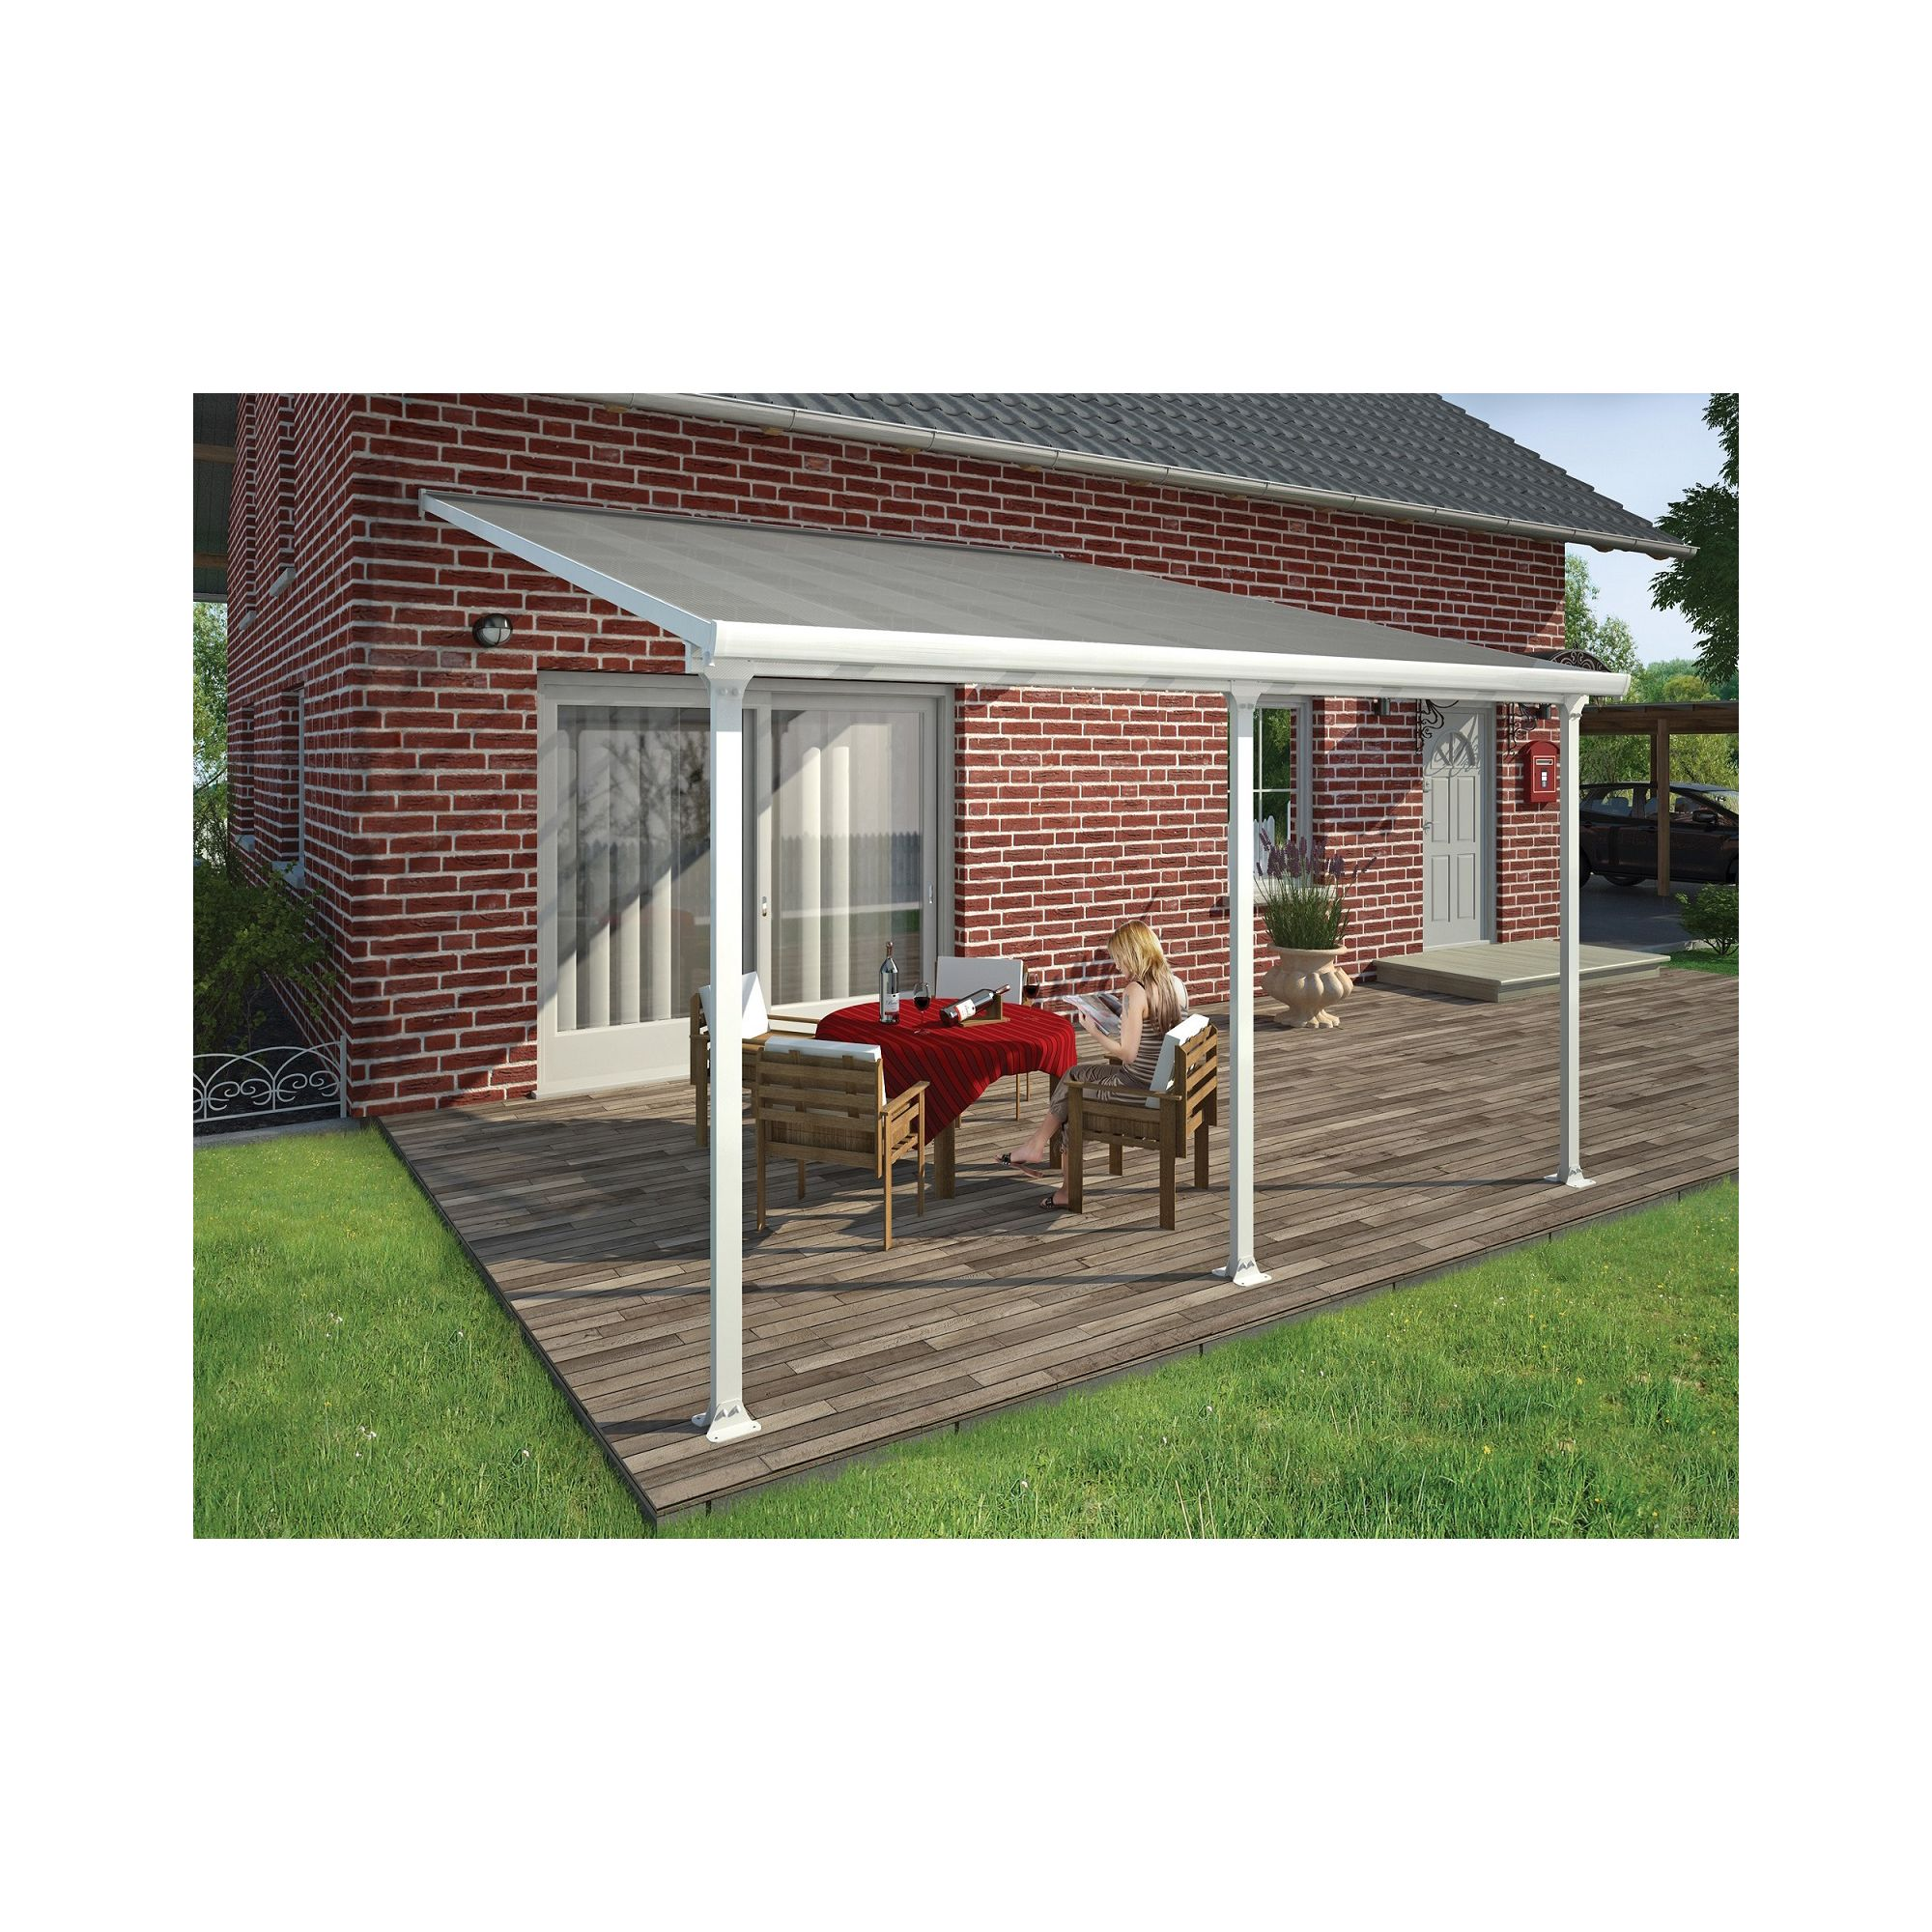 FERIA LEAN TO CARPORT AND PATIO COVER 4X4.25 WHITE at Tesco Direct